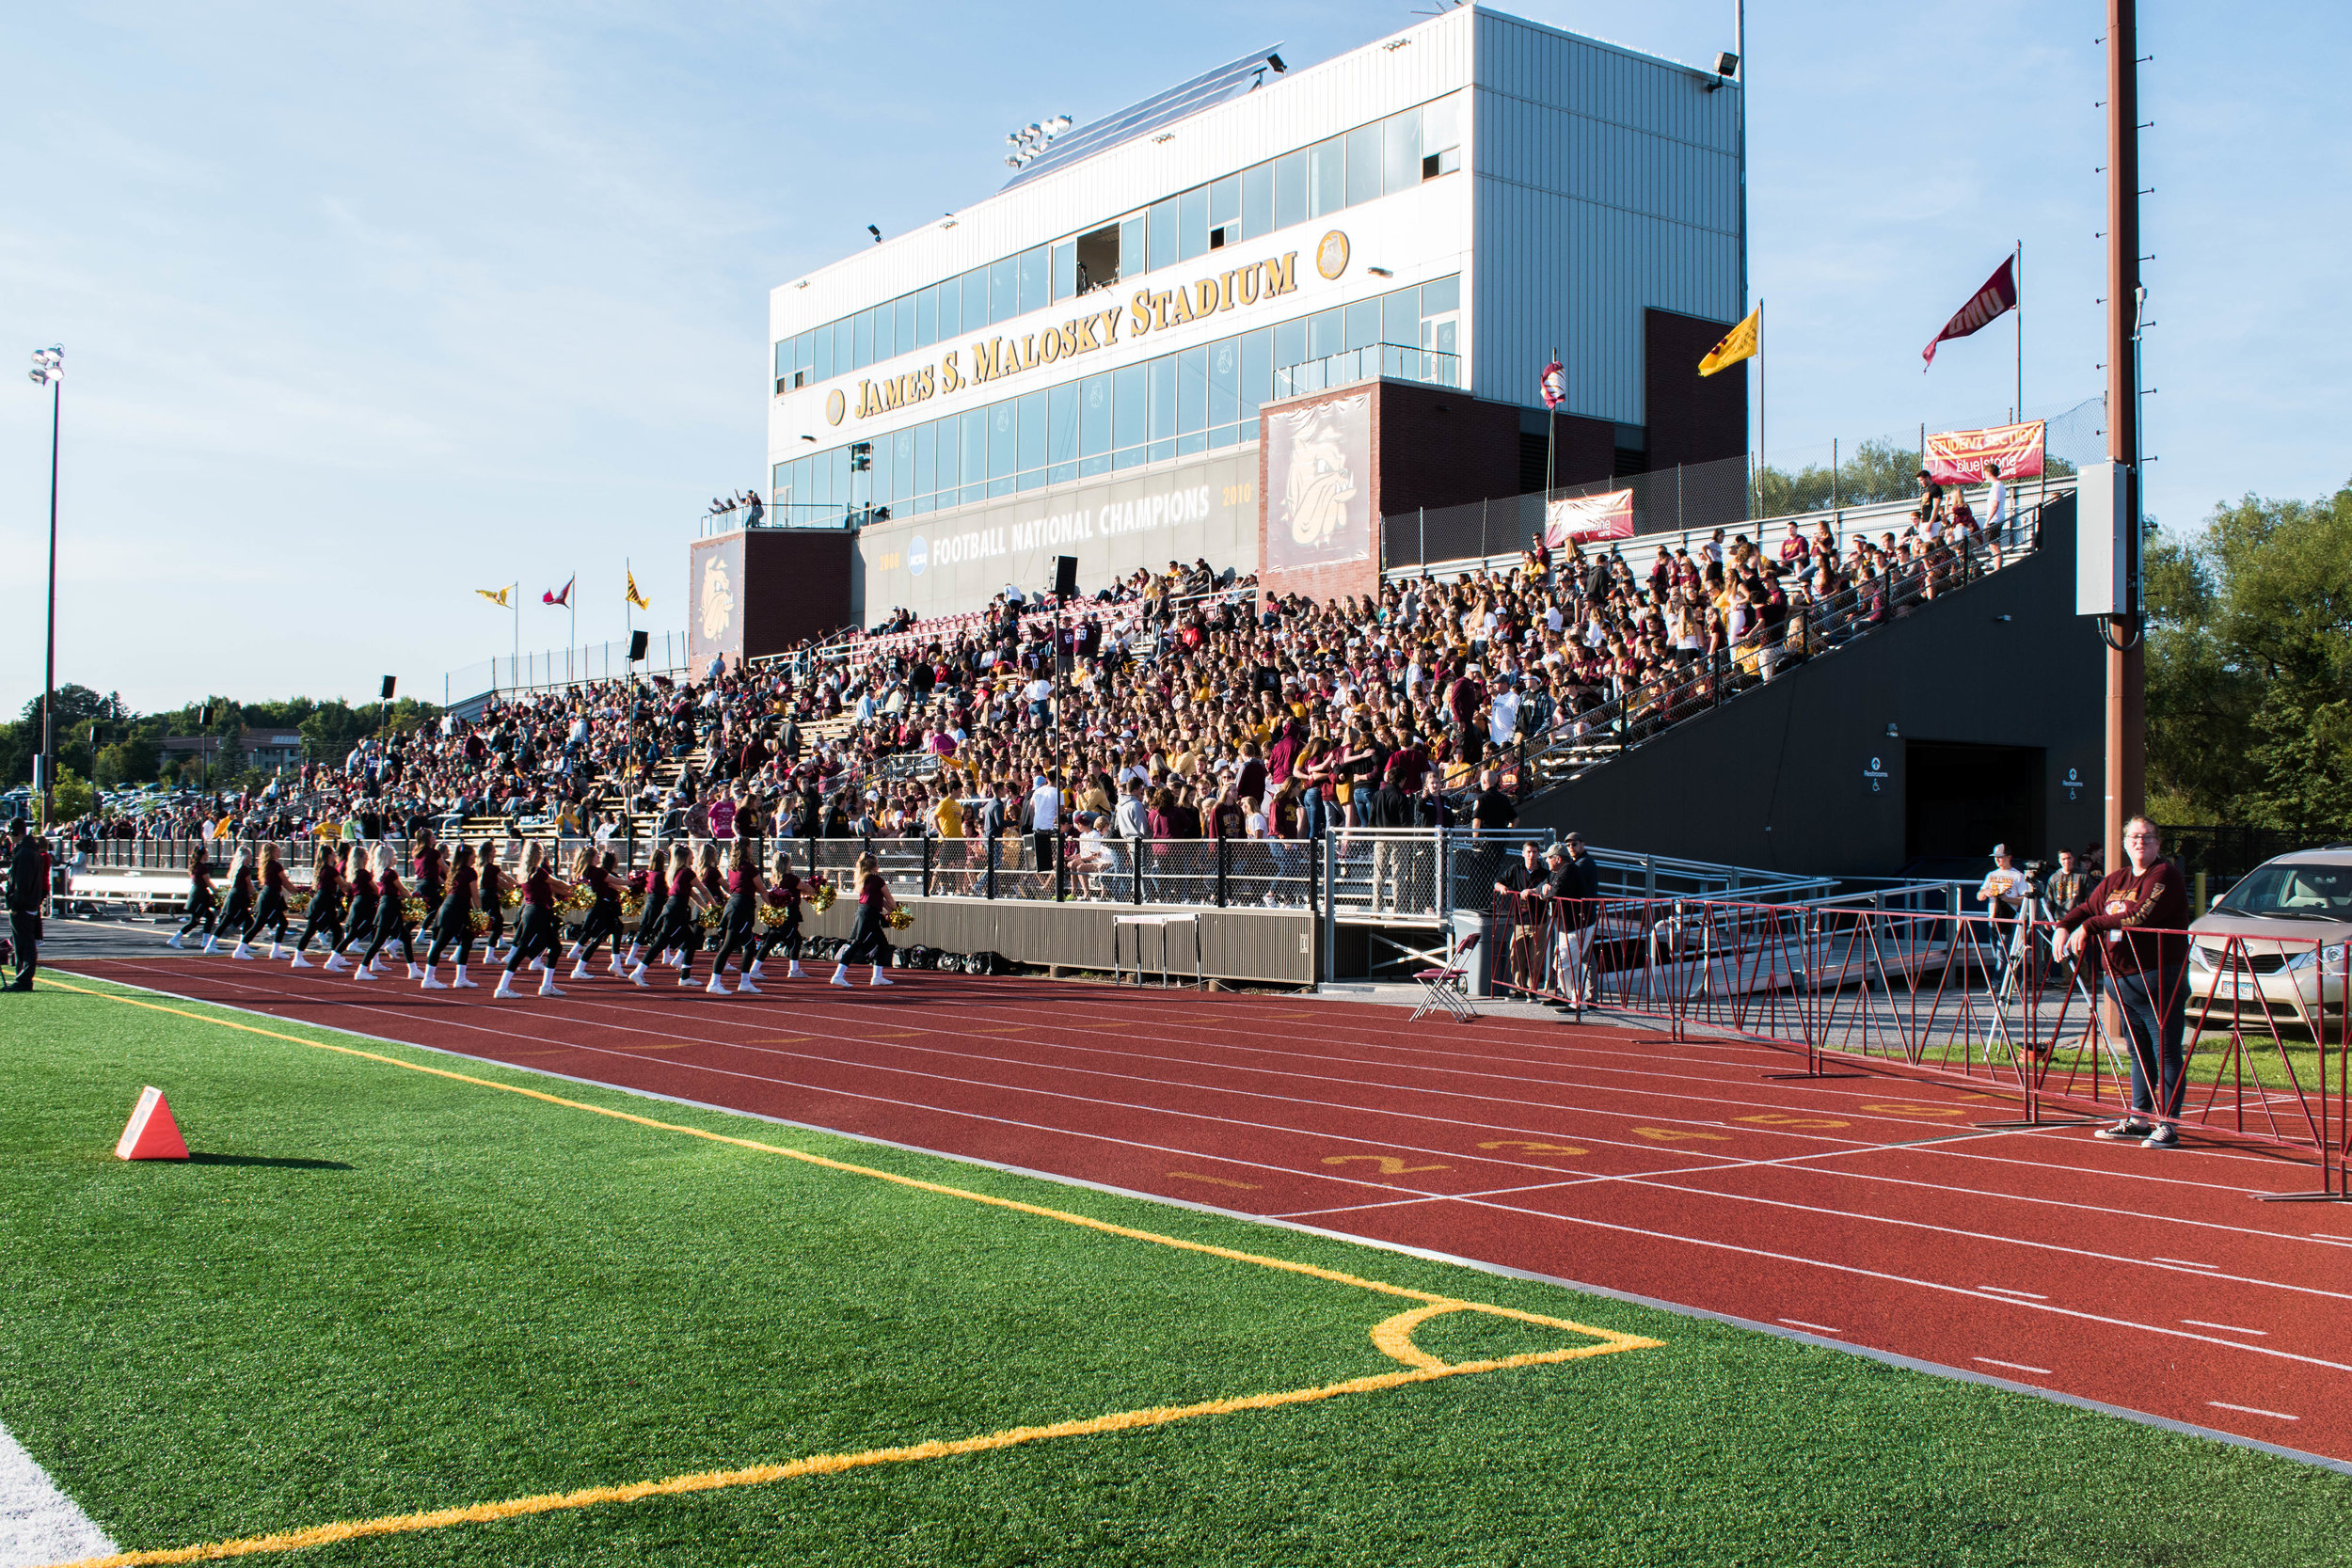 Fans gather in the stands during the opening game of this season. Photo by: Kari Kruse